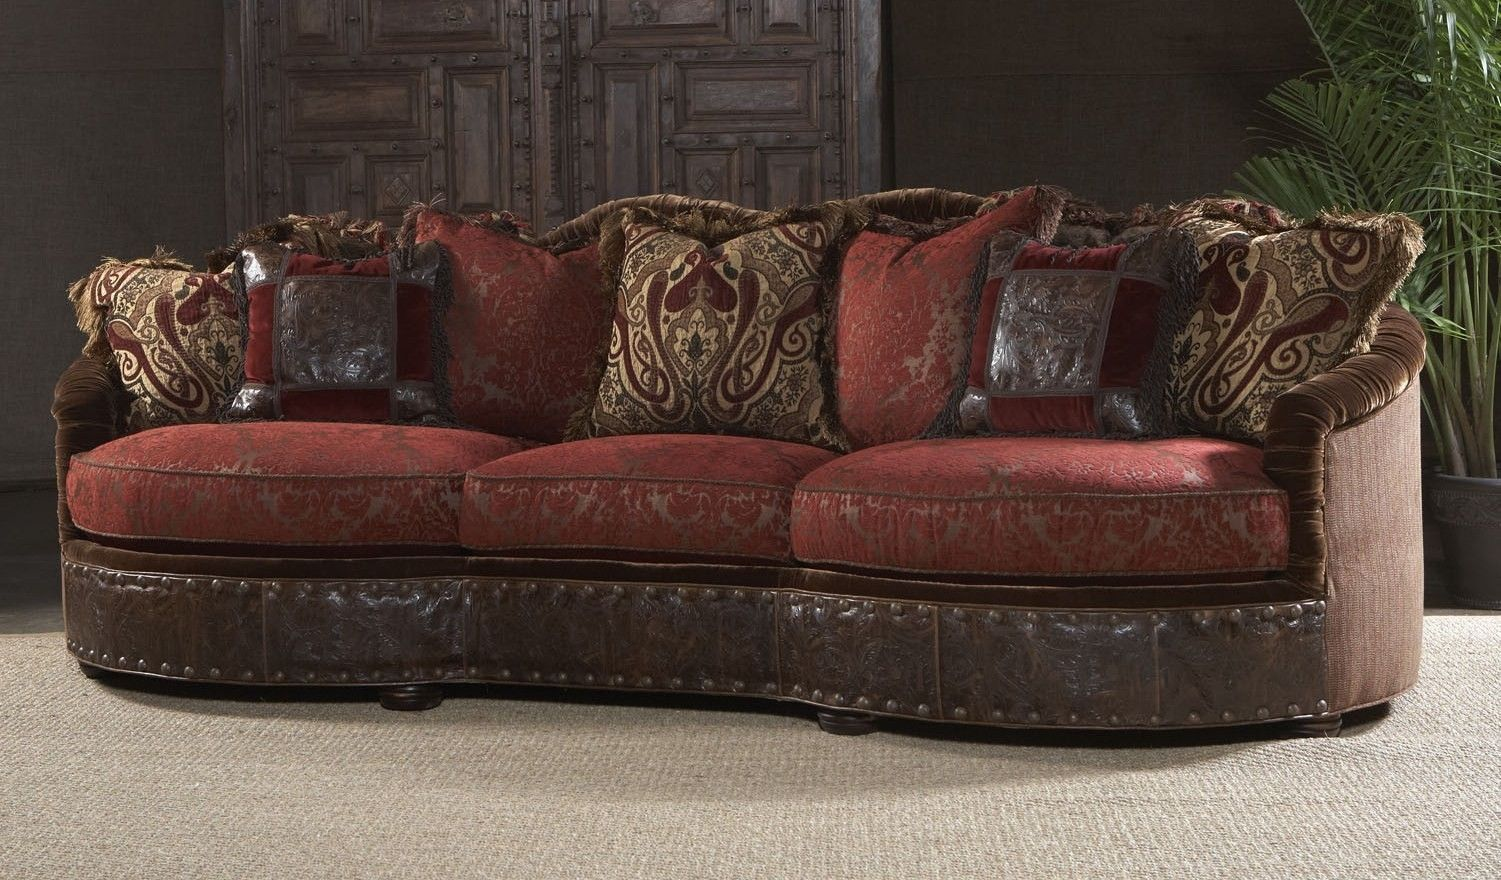 leather sofa with fabric seat cushions vs loveseat luxury furniture couch and decorative pillows